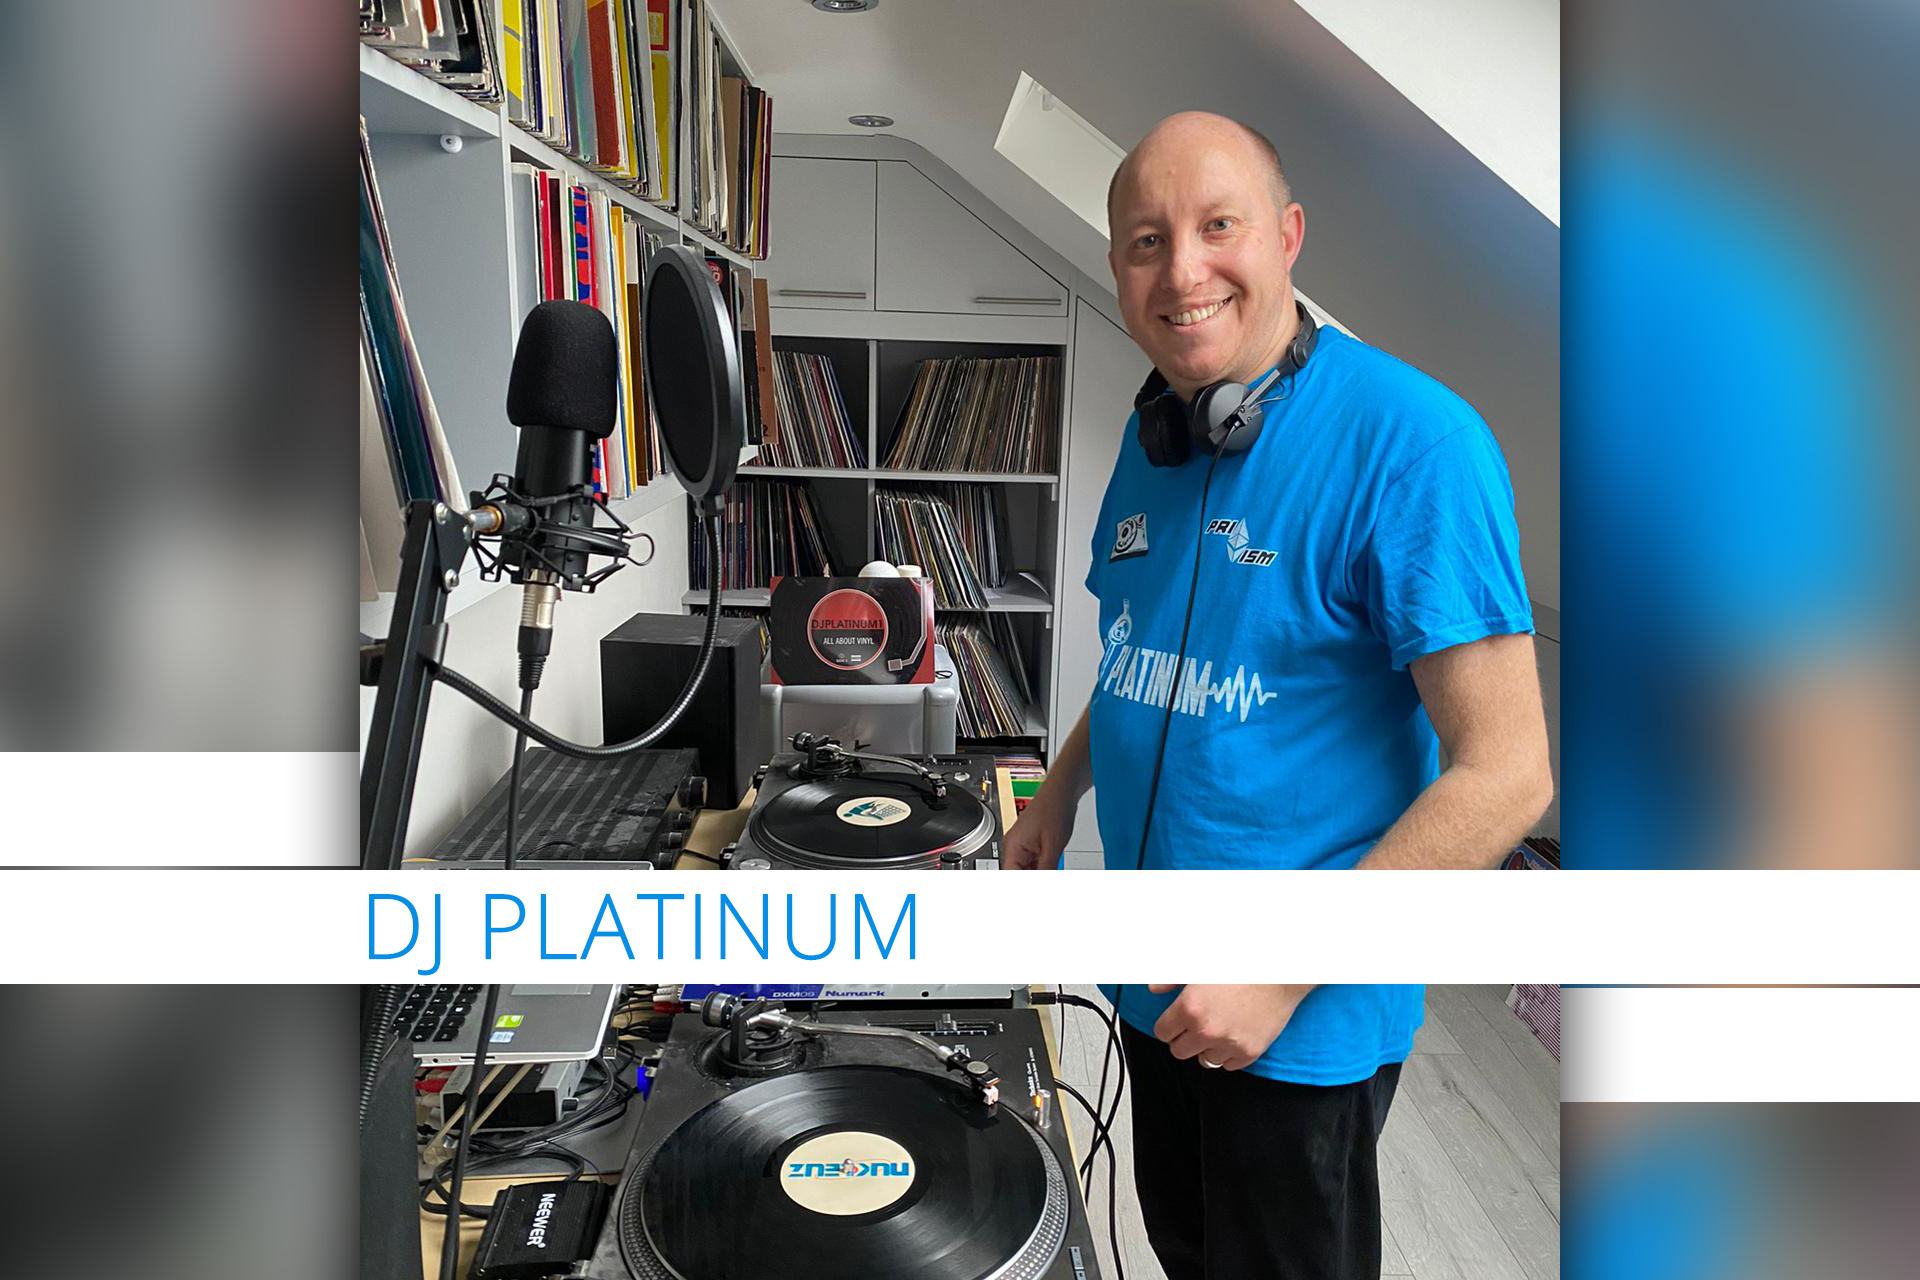 DJ Platinum: Passion and Practice Are the Core of What Makes a DJ Great